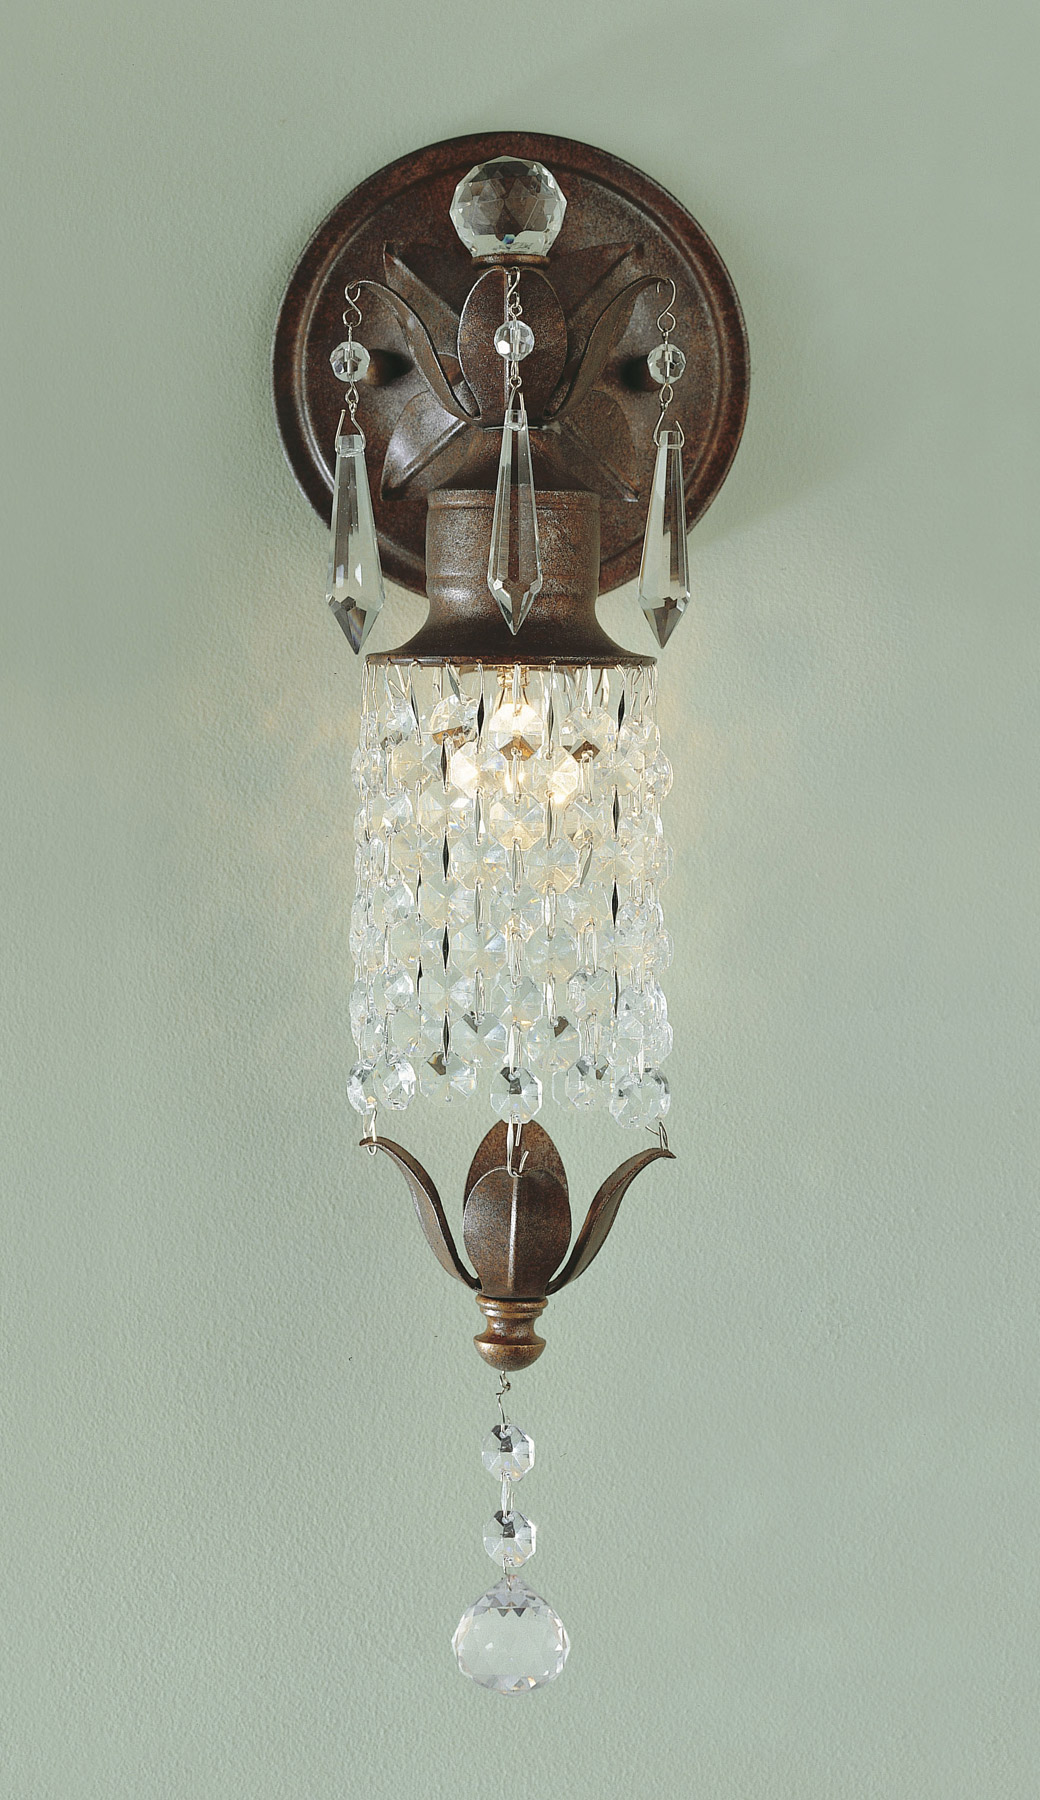 Wall Sconces Murray Feiss : Murray Feiss WB1216BRB Crystal Maison de Ville Wall Sconce